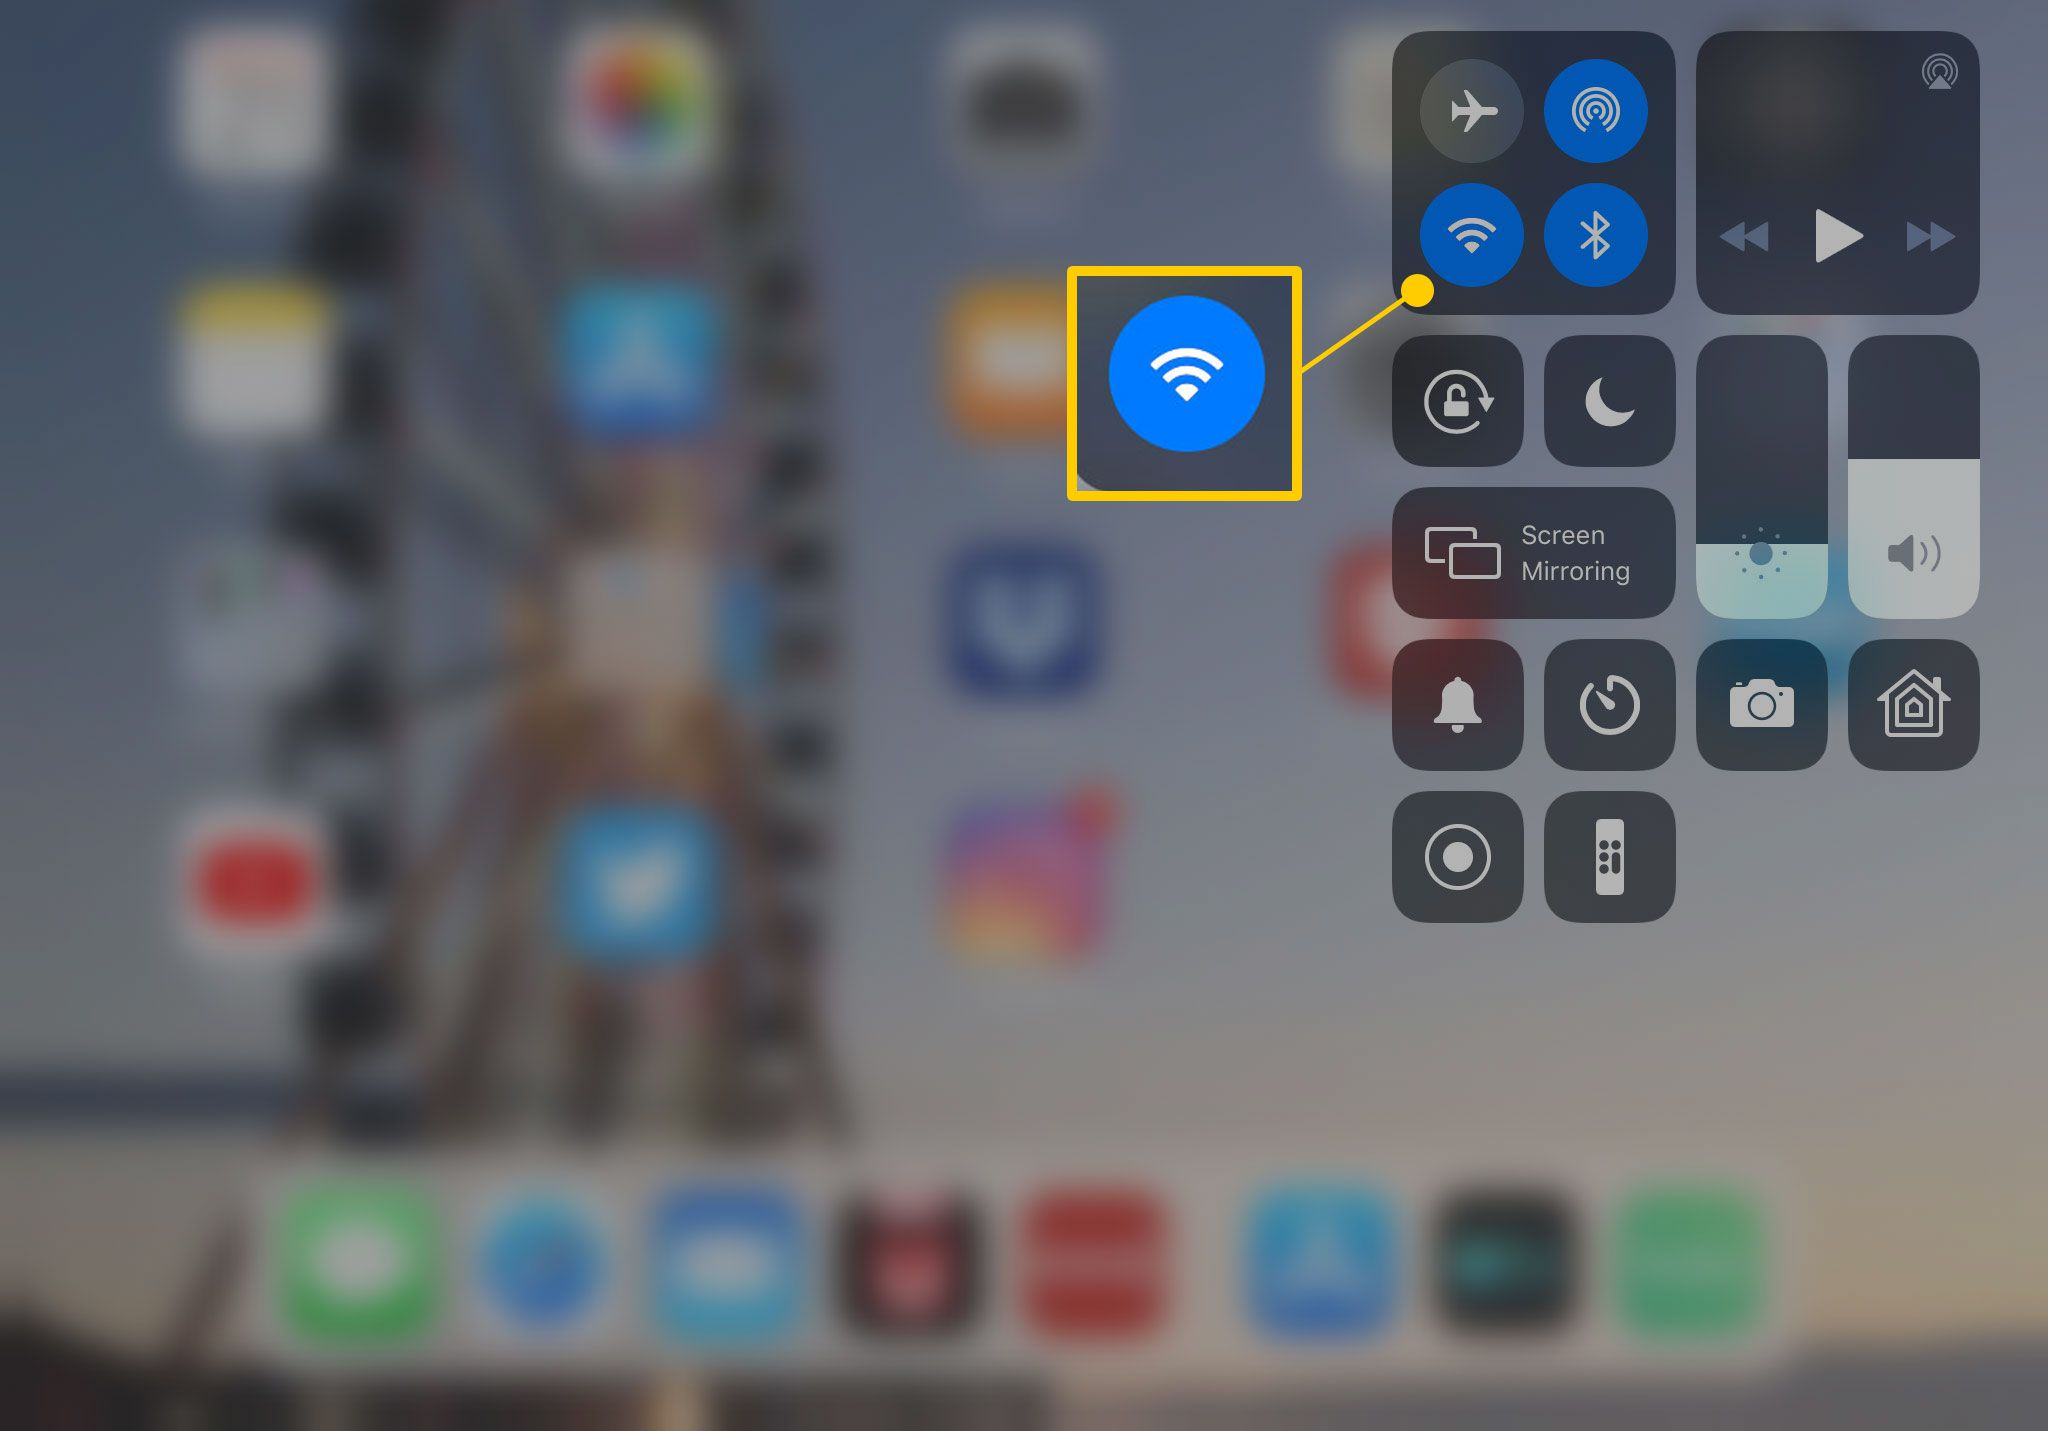 How to Connect an iPad to Wi-Fi in 6 Easy Steps